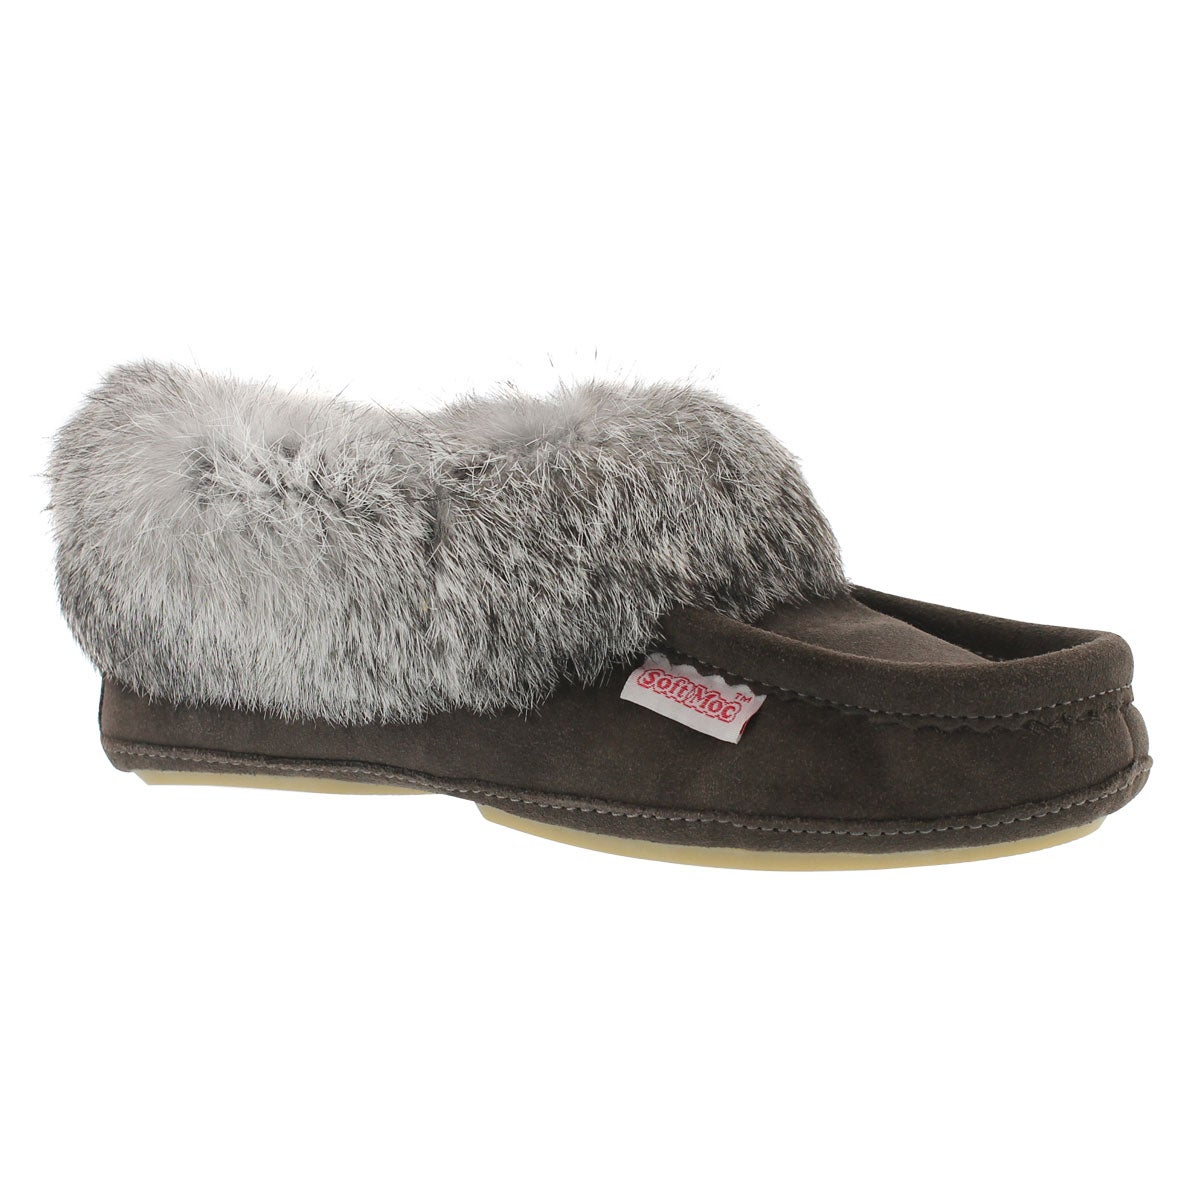 Lds Carrot2 grey sde rabbit fur moccasin